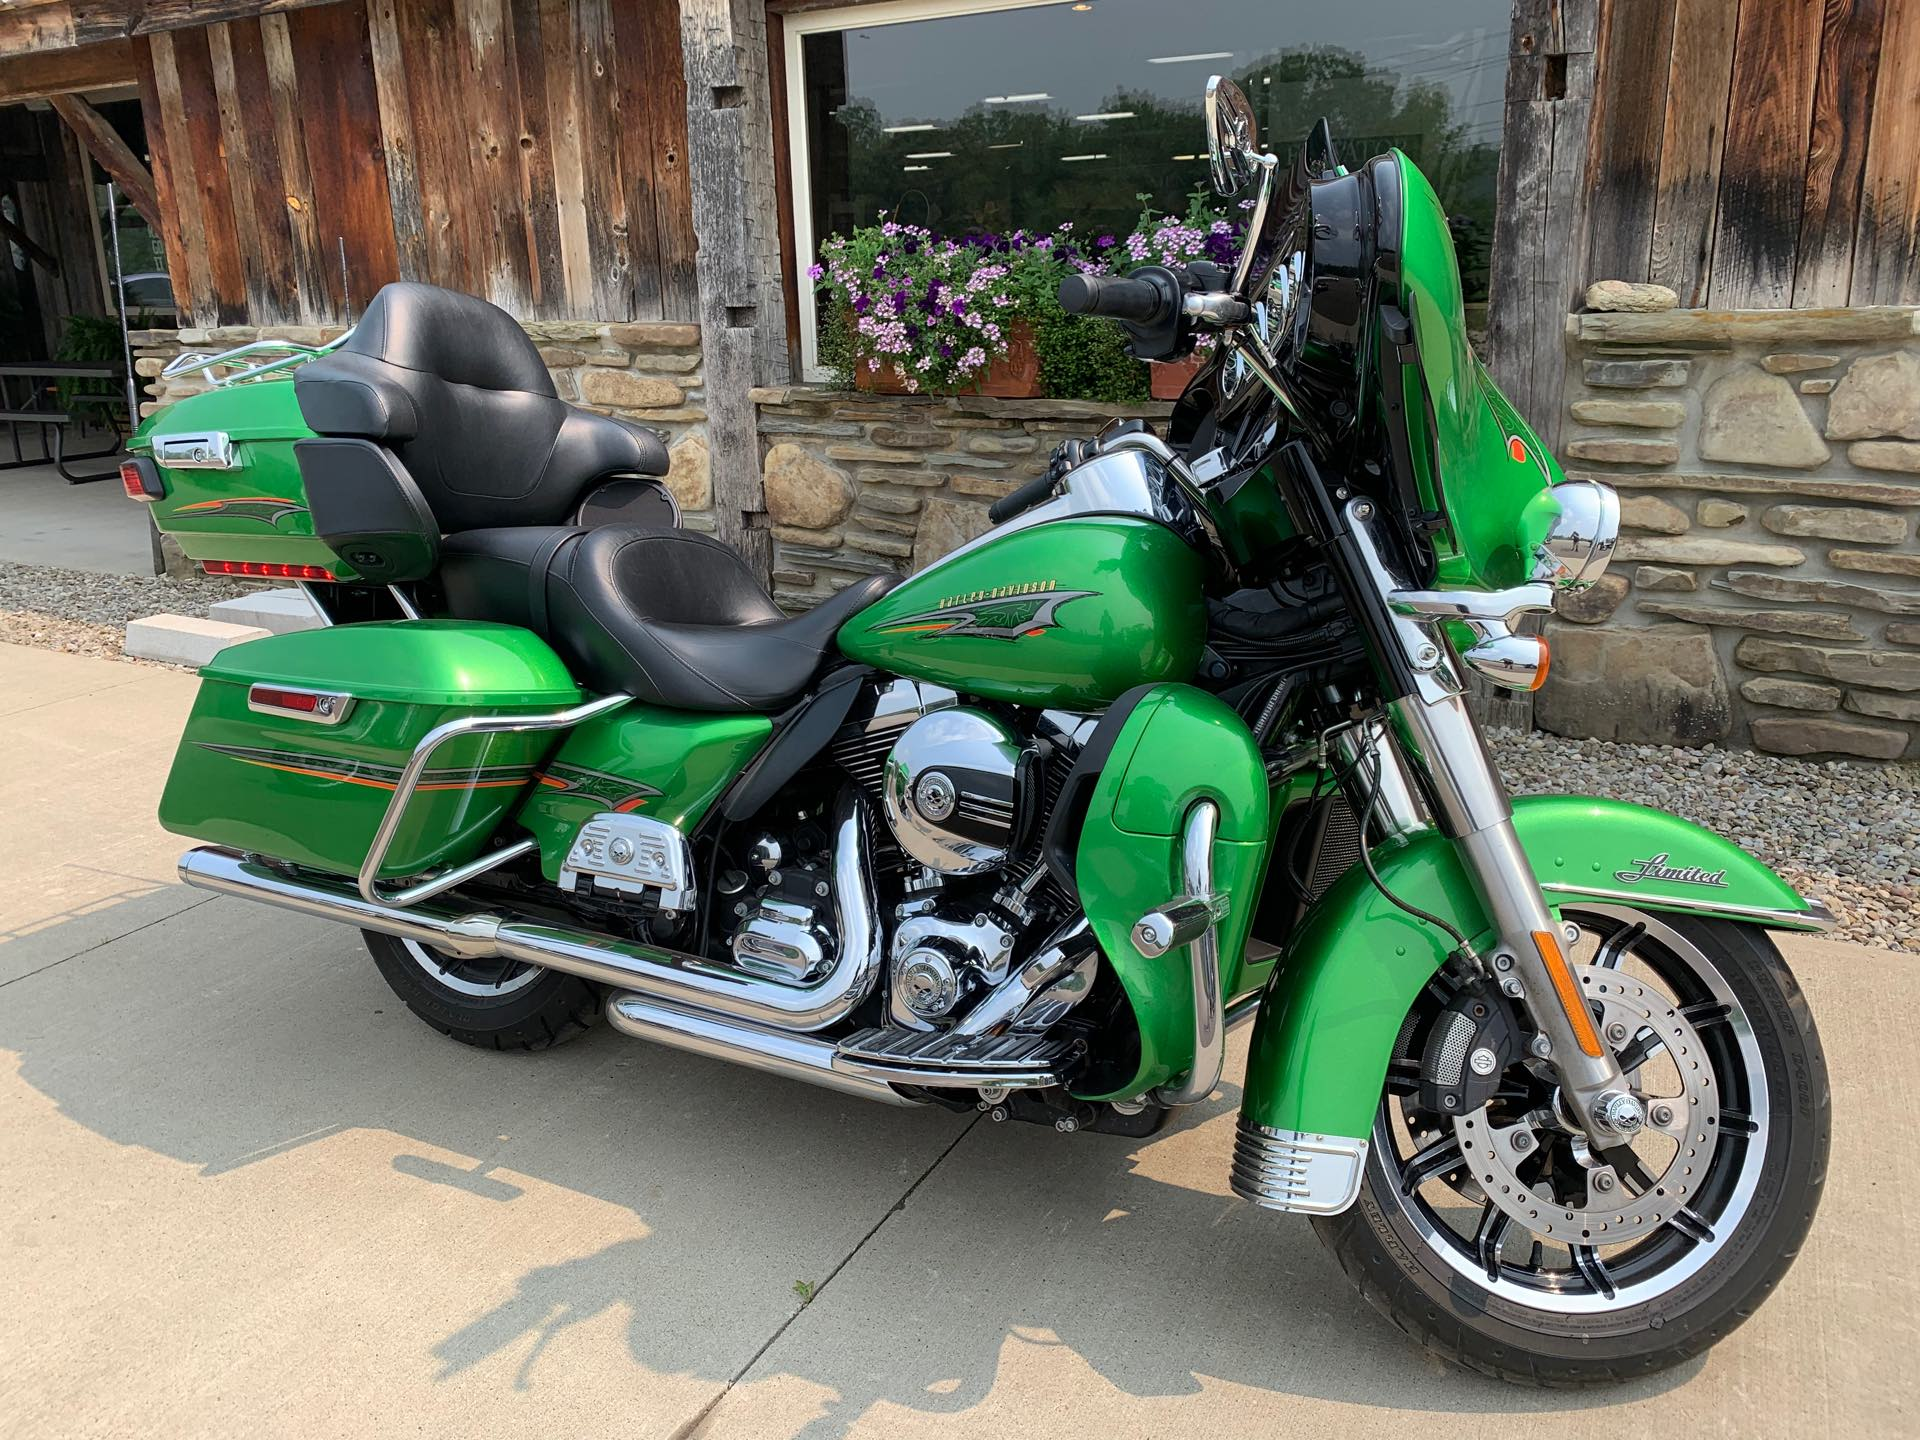 2015 Harley-Davidson Electra Glide Ultra Limited at Arkport Cycles